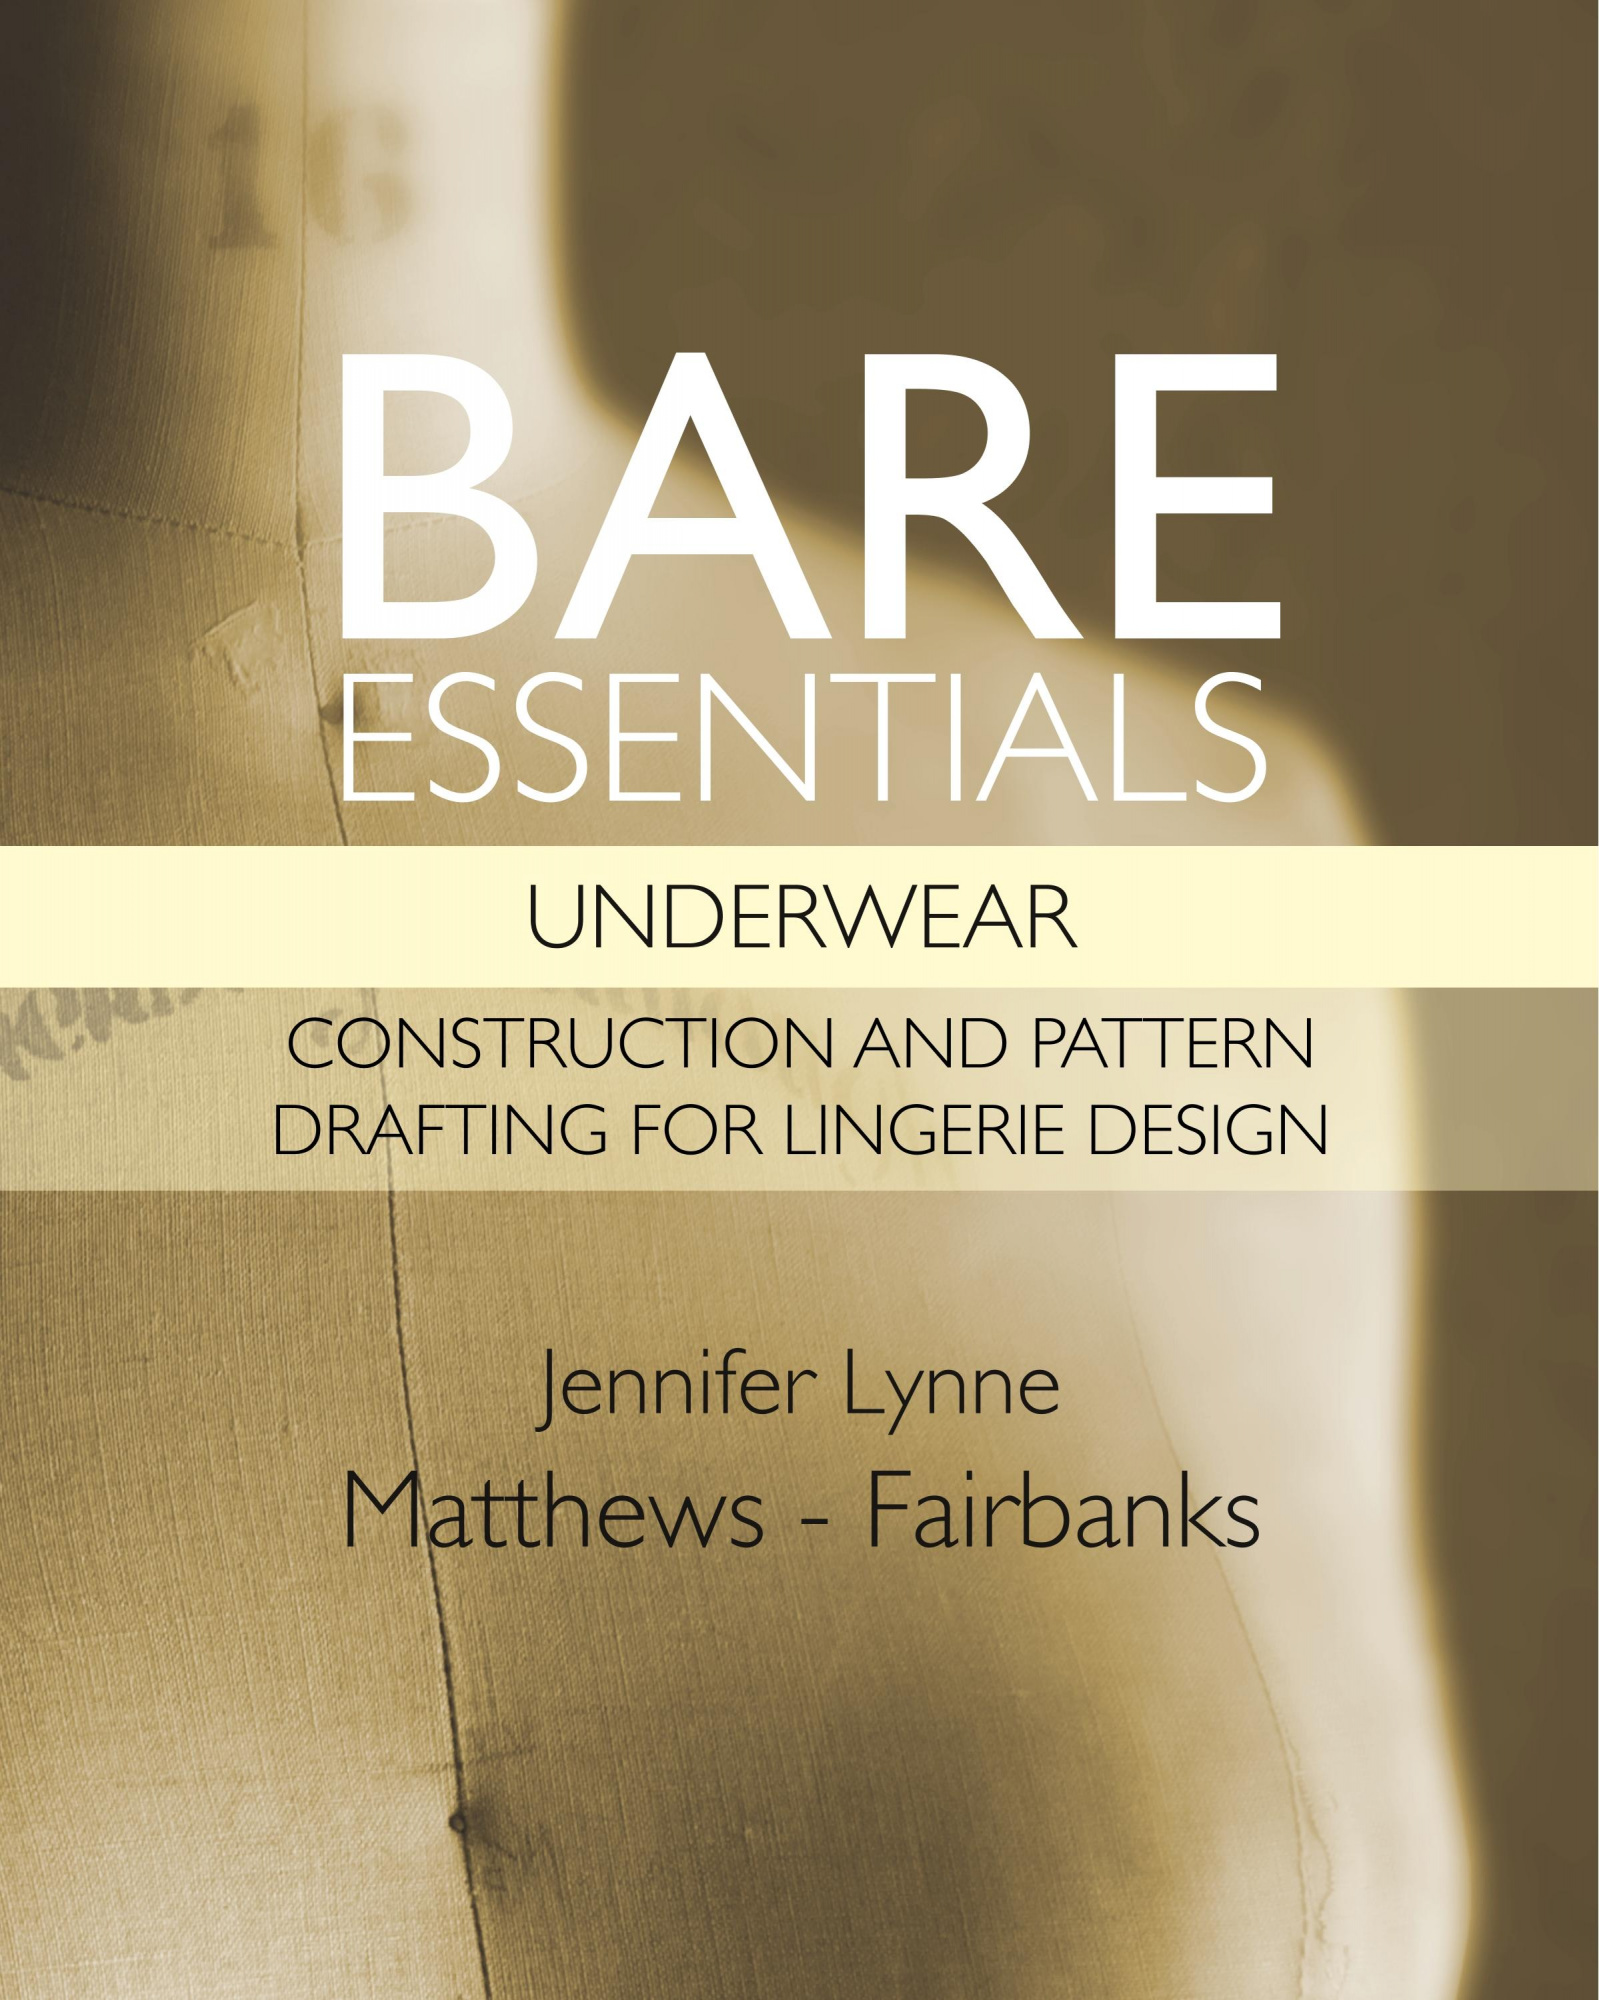 Bare Essentials: Underwear - Construction and Pattern Drafting for Lingerie Design by Jennifer Lynne Matthews-Fairbanks, ISBN: 9780983132820